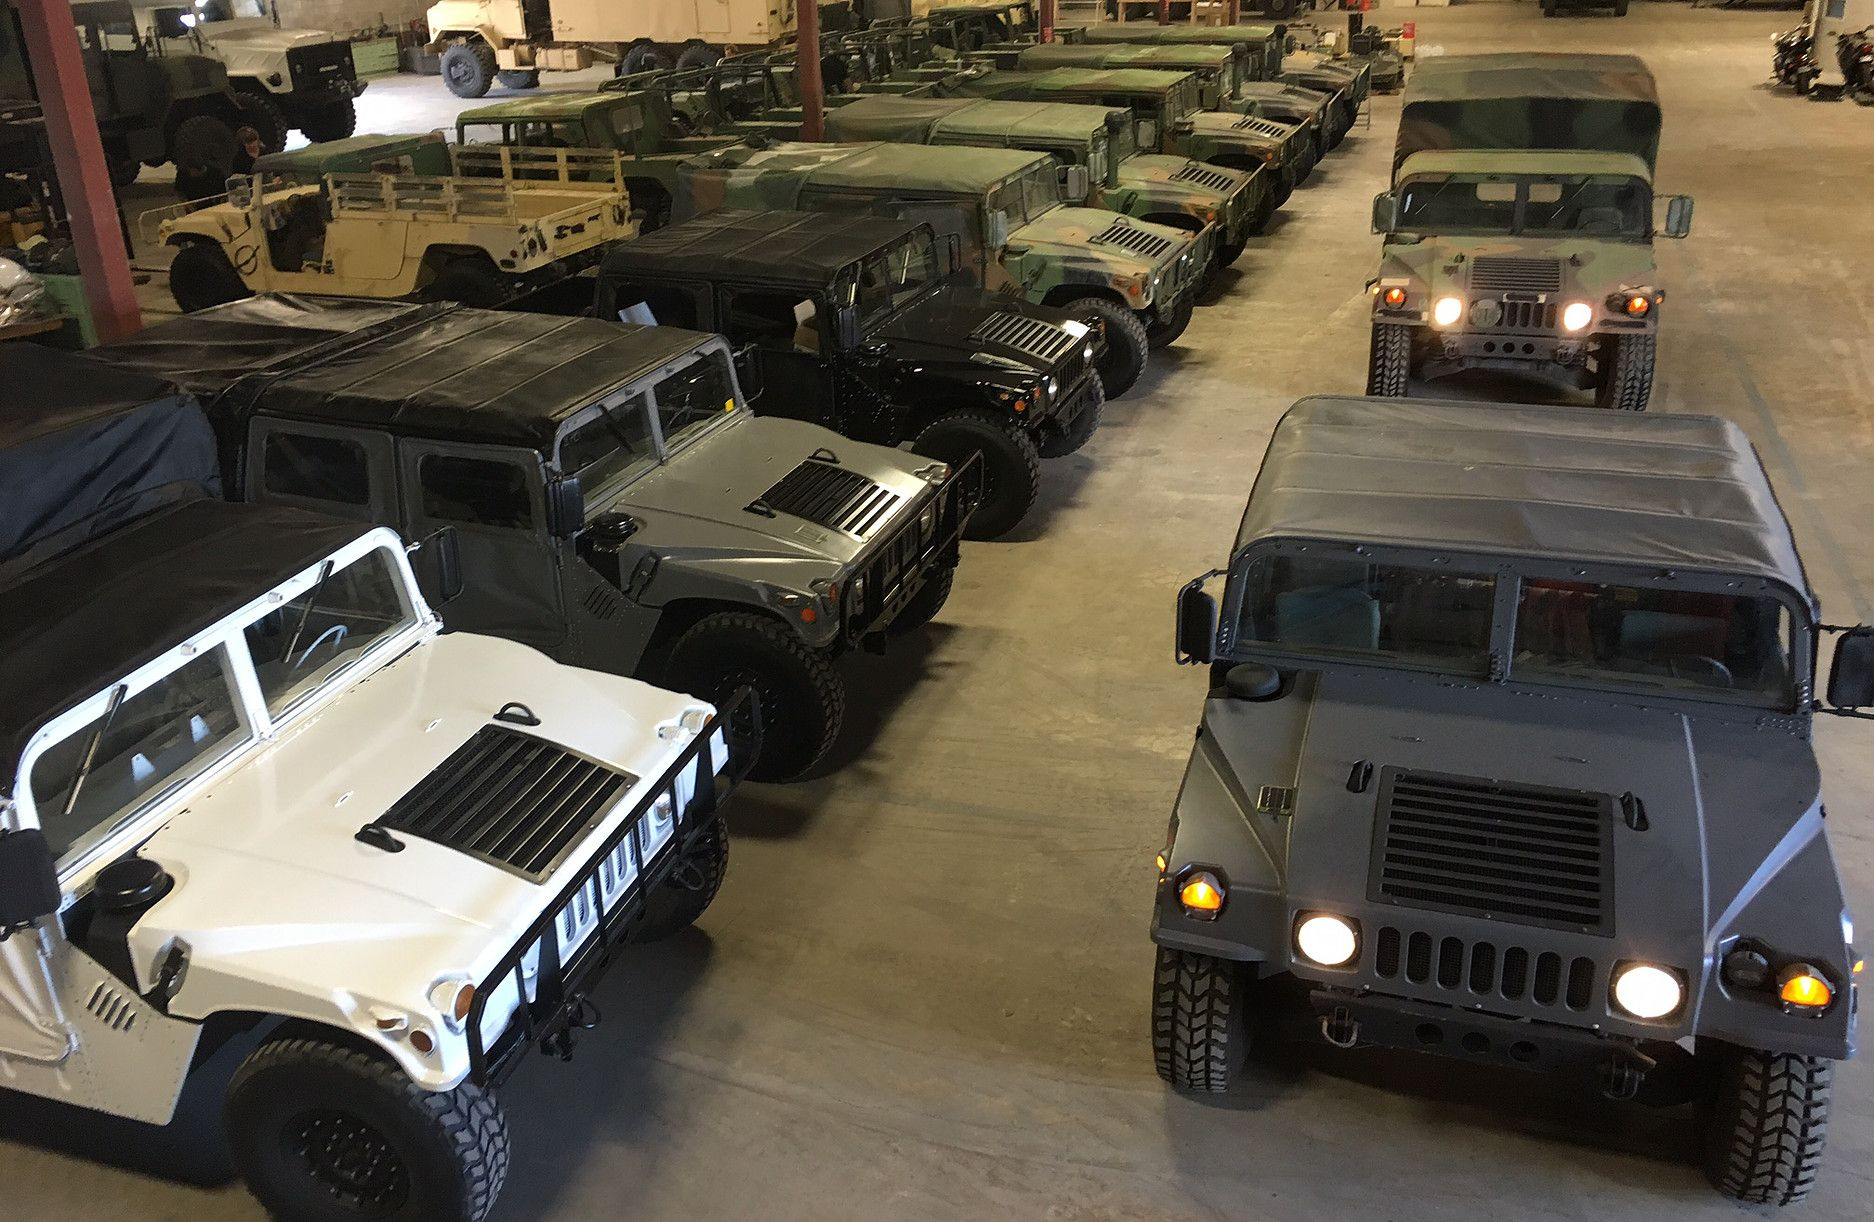 The 25 best hummer for sale ideas on pinterest used hummers for sale h1 for sale and legos on sale